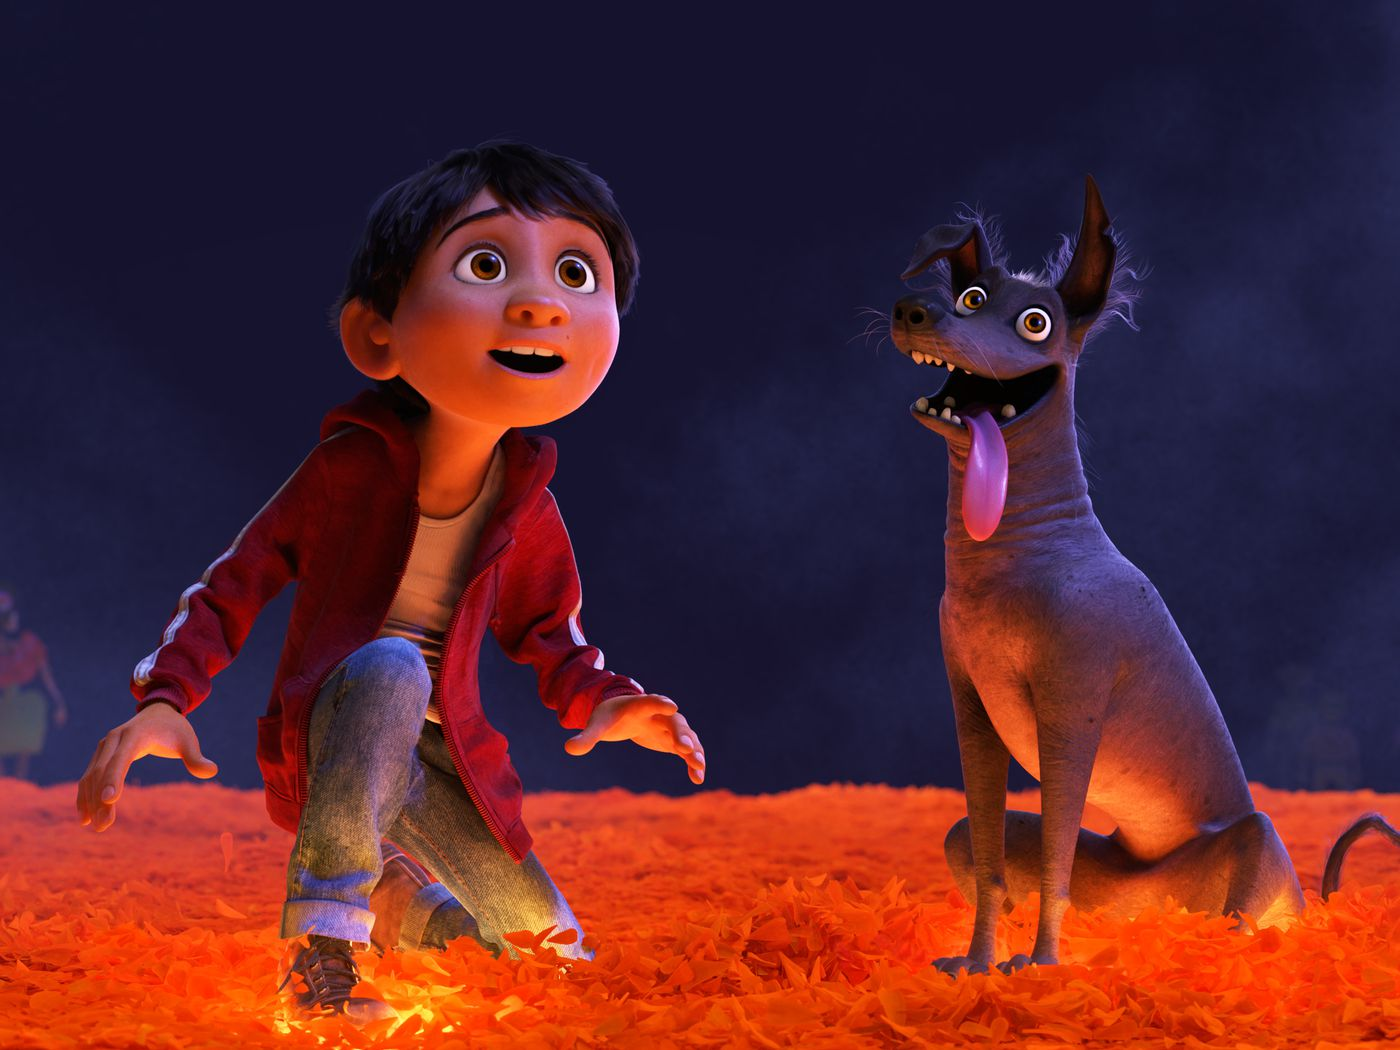 pocket monsters the movie coco full movie